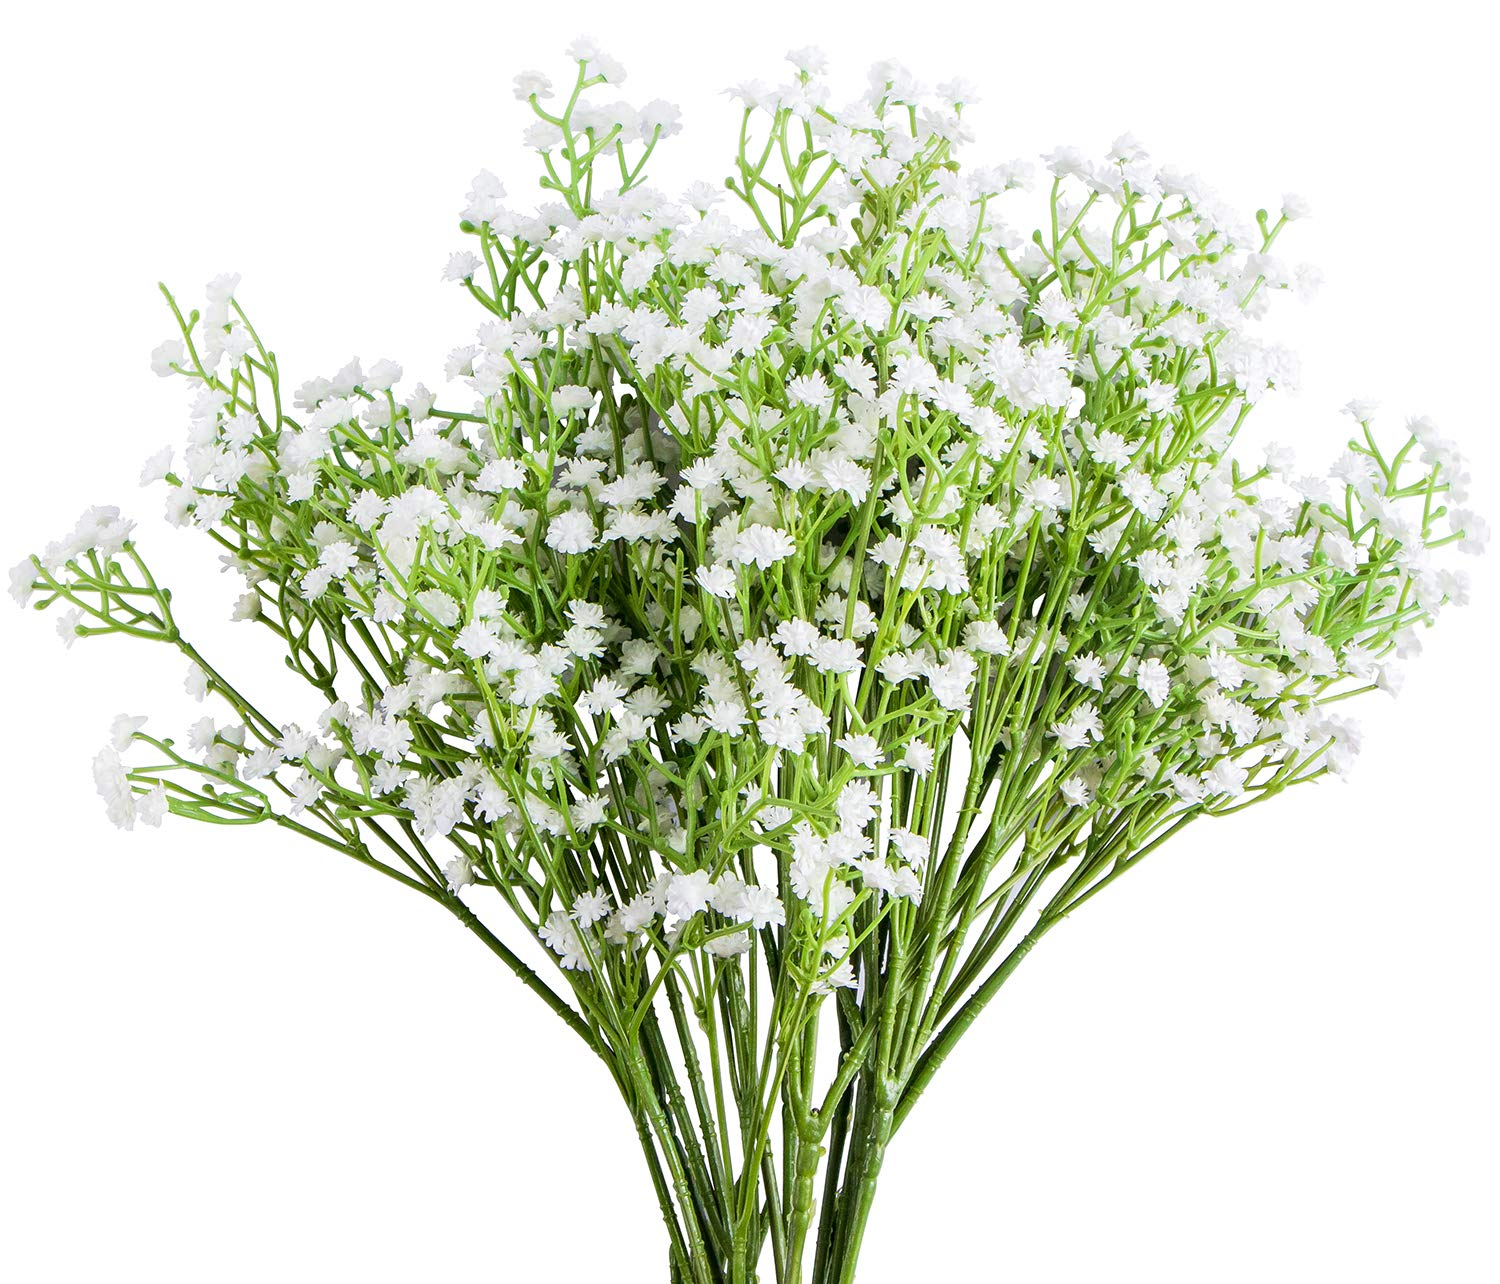 Foraineam 12-Pack Baby Breath Artificial Flowers Bouquets Real Touch Wedding Home Garden Party Decor Gypsophila Fake Plants